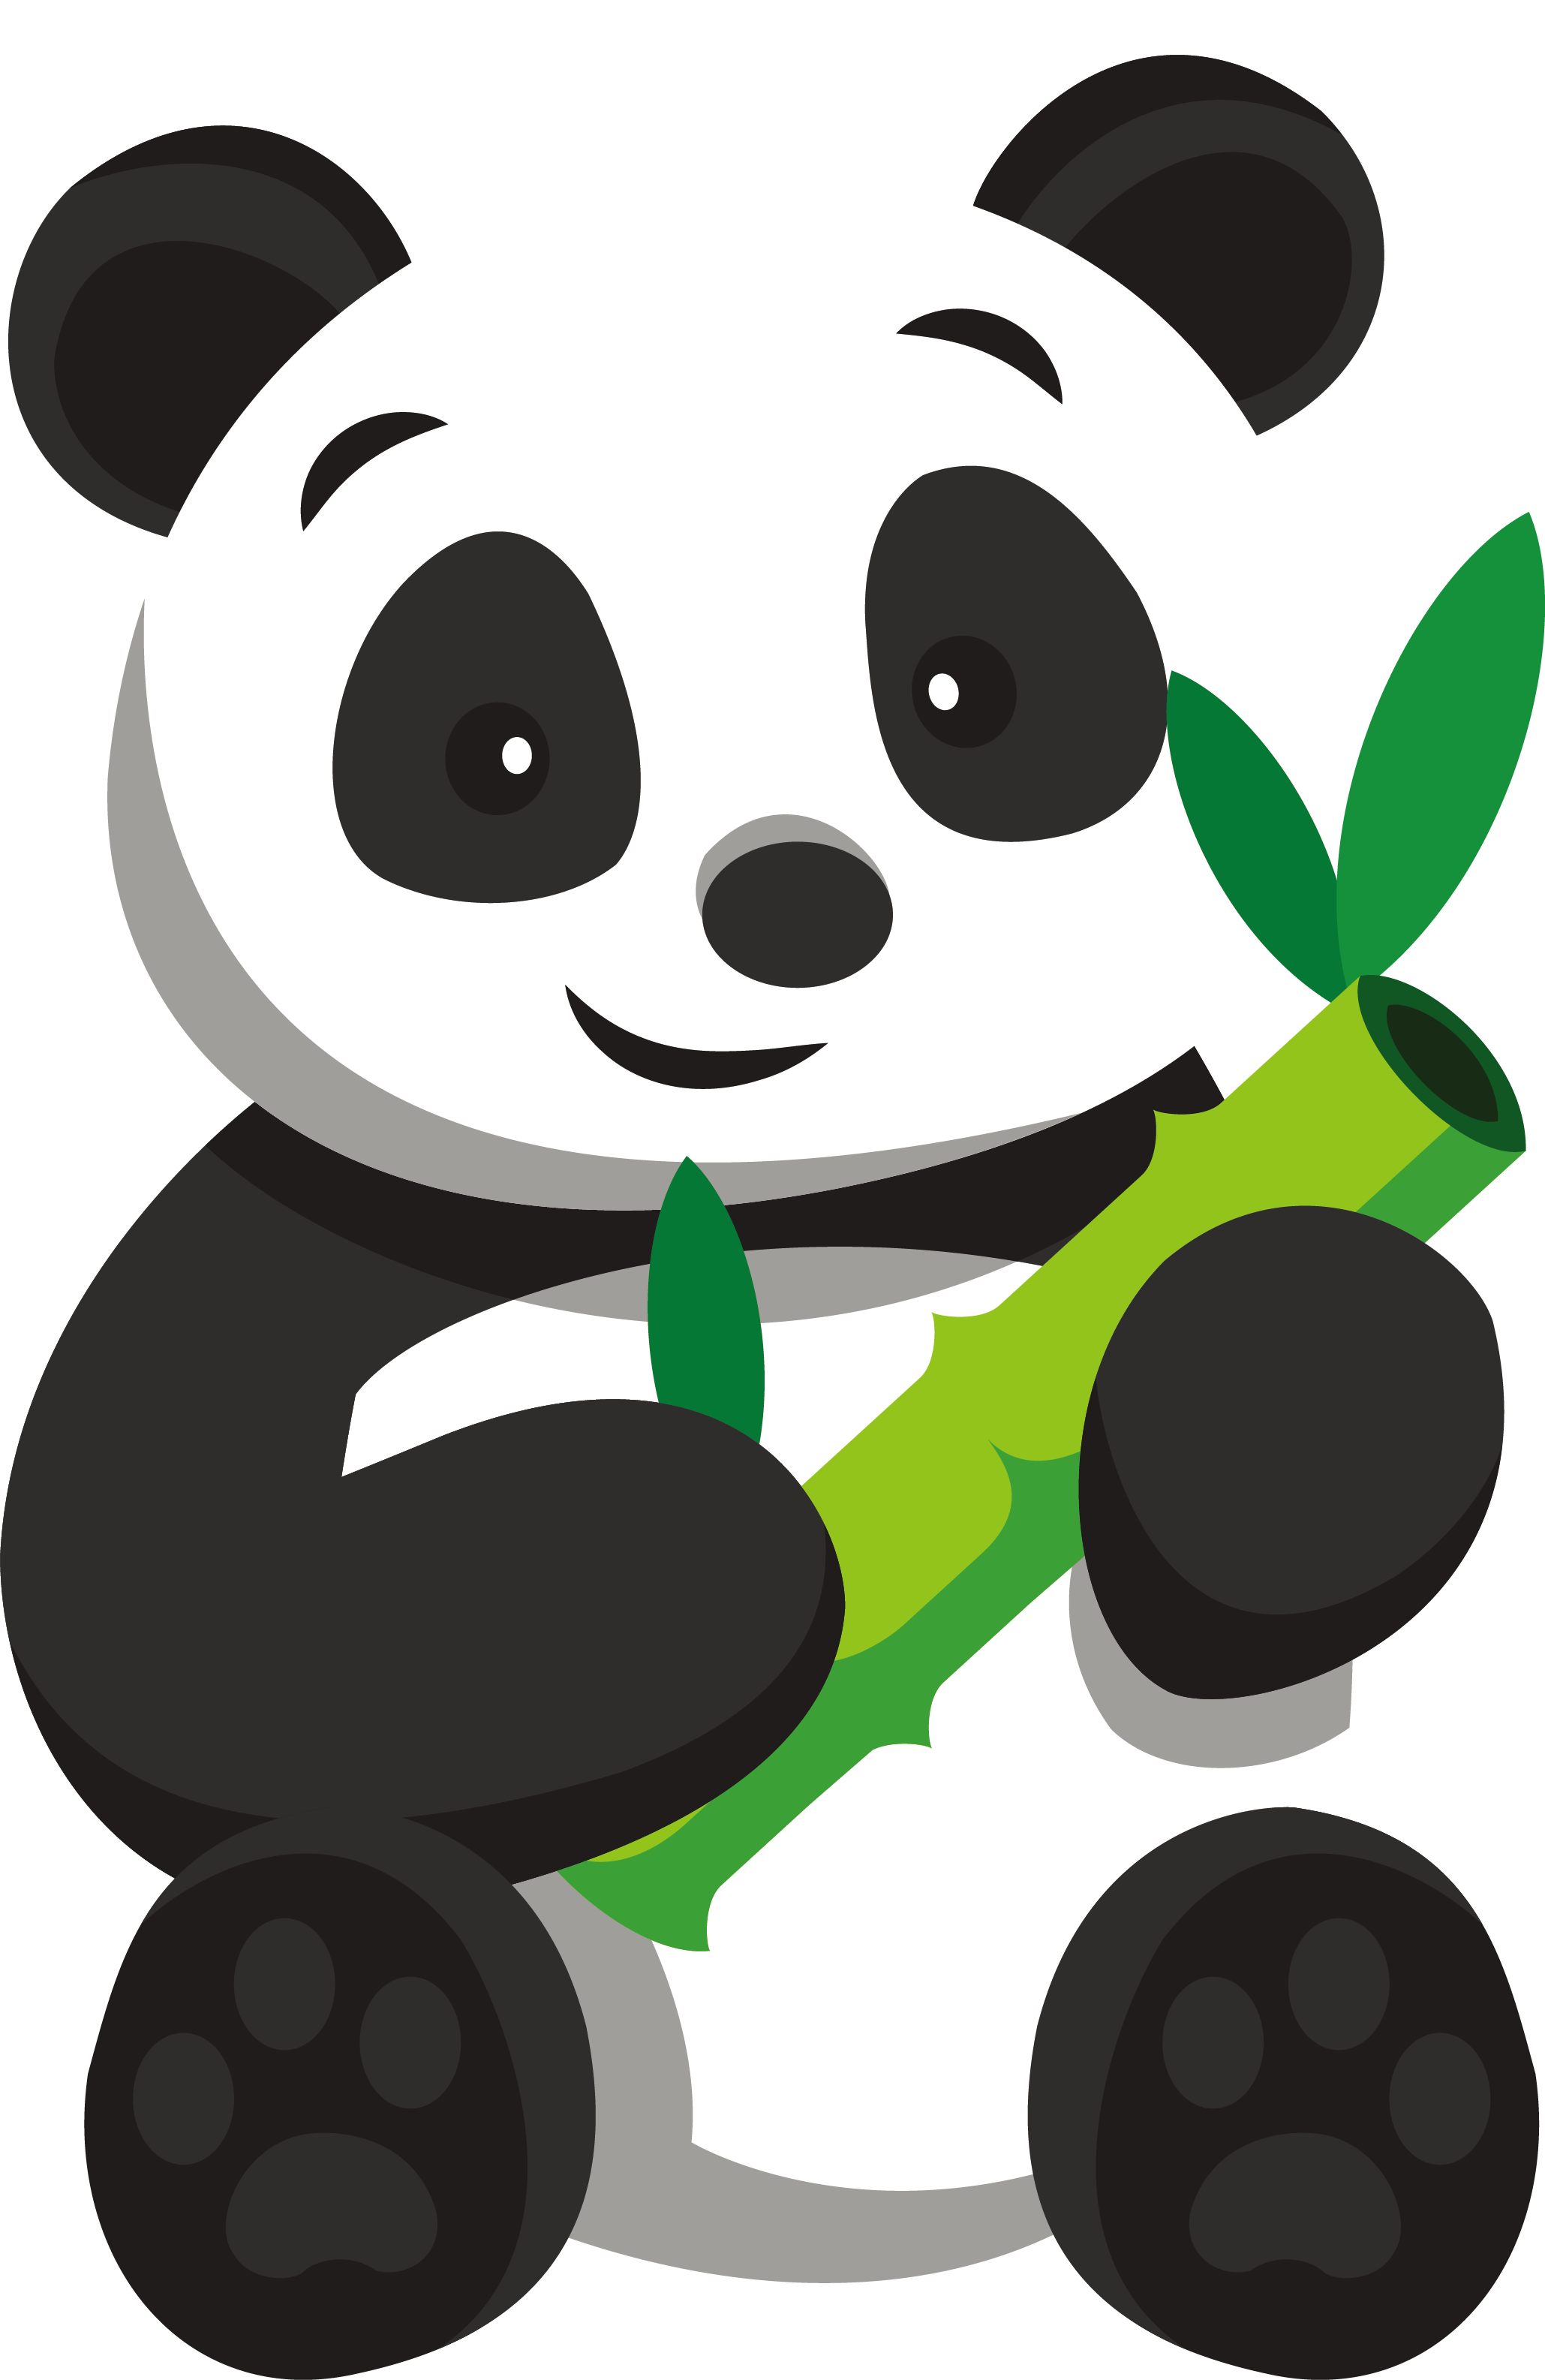 House clipart bear. Giant panda restaurant clip